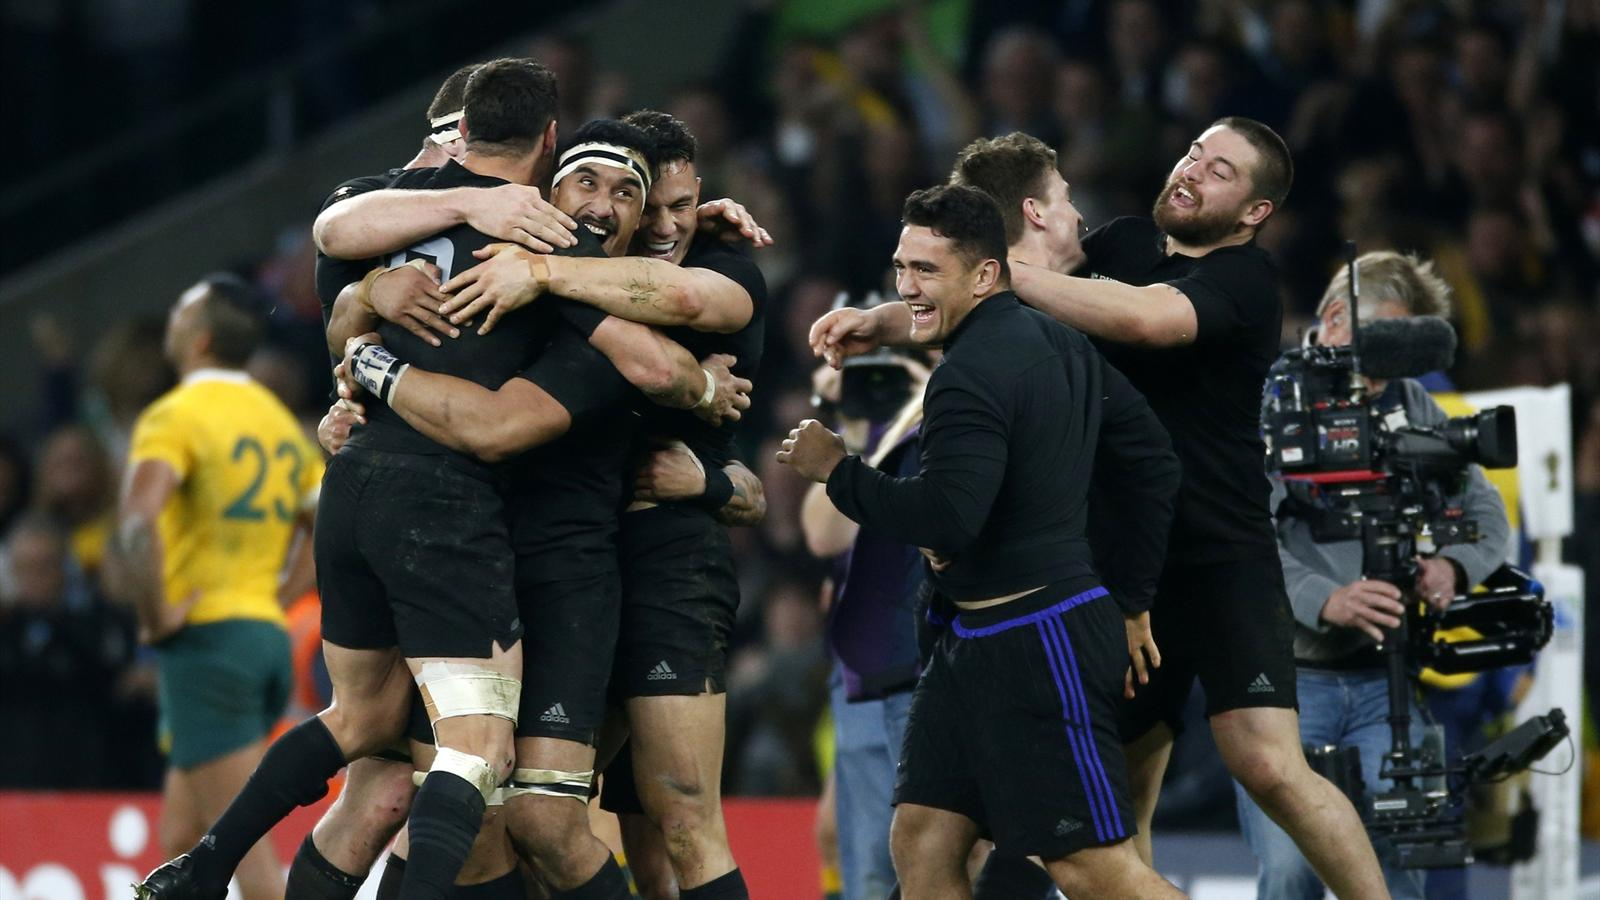 New Zealand players celebrate after beating Australia to win the Rugby World Cup final match at Twickenham